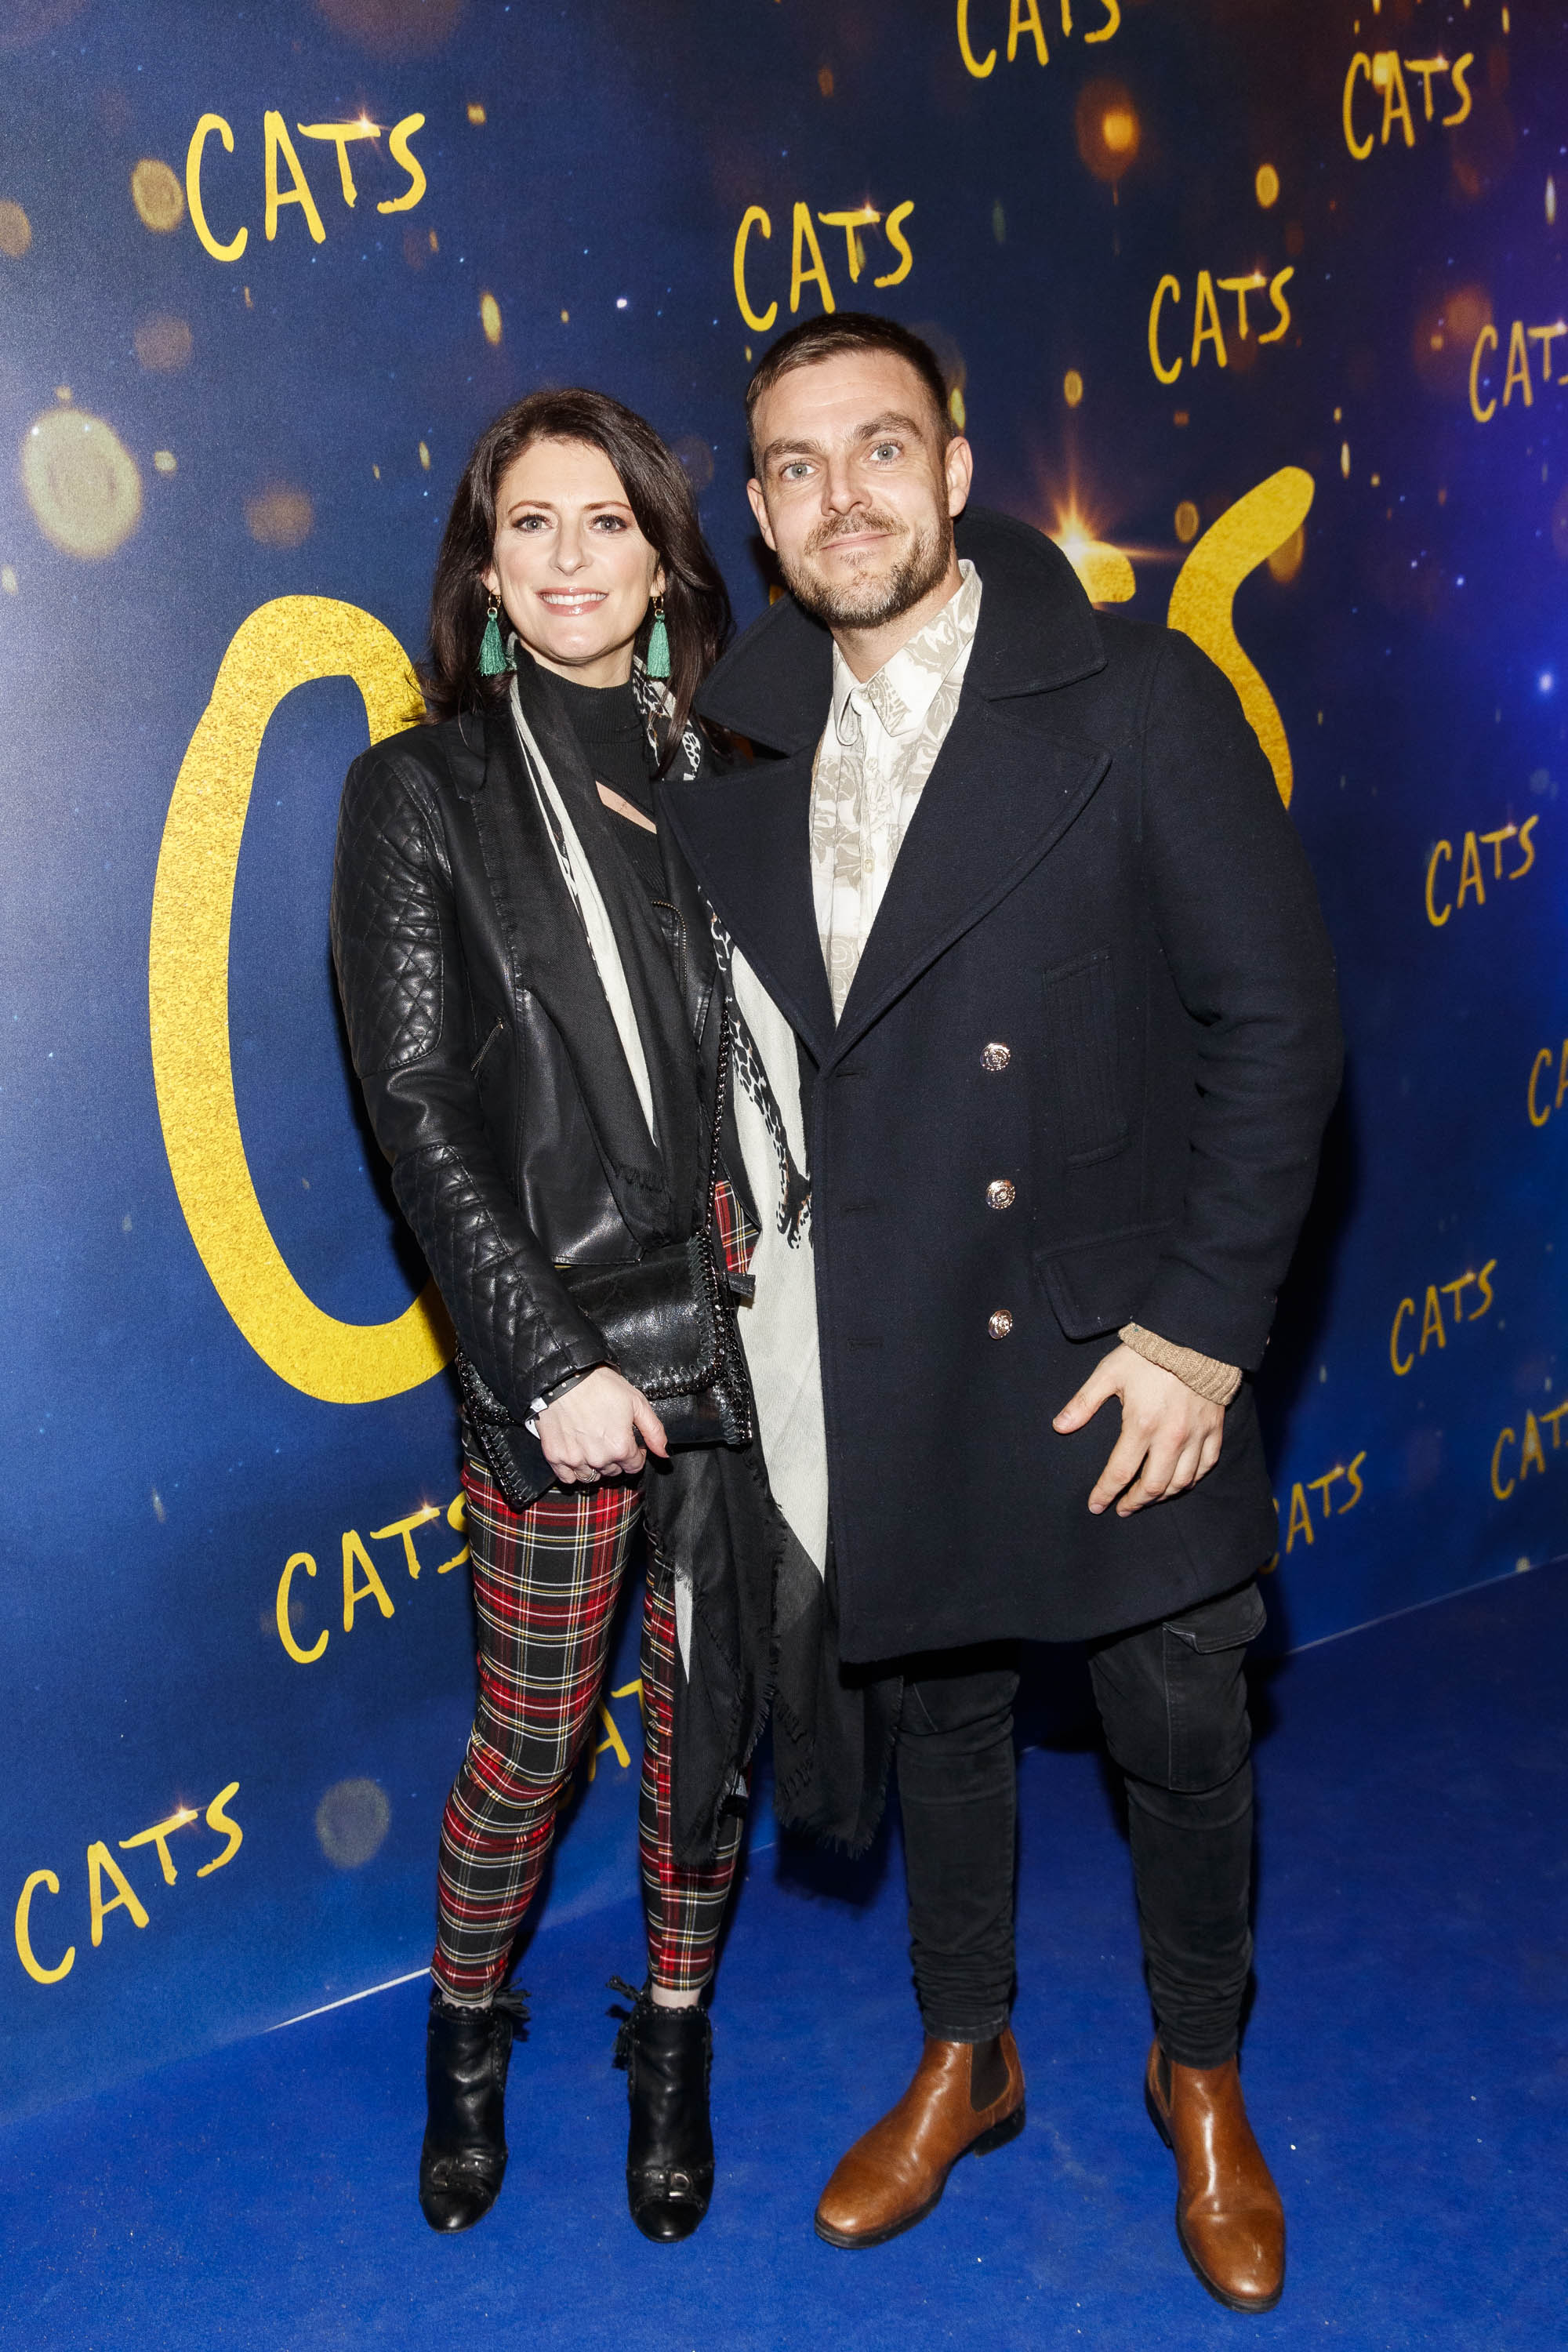 Sinead O Carroll and dance partner Ryan McShane pictured at the Irish premiere screening of 'Cats' at The Stella Theatre, Rathmines. Picture: Andres Poveda